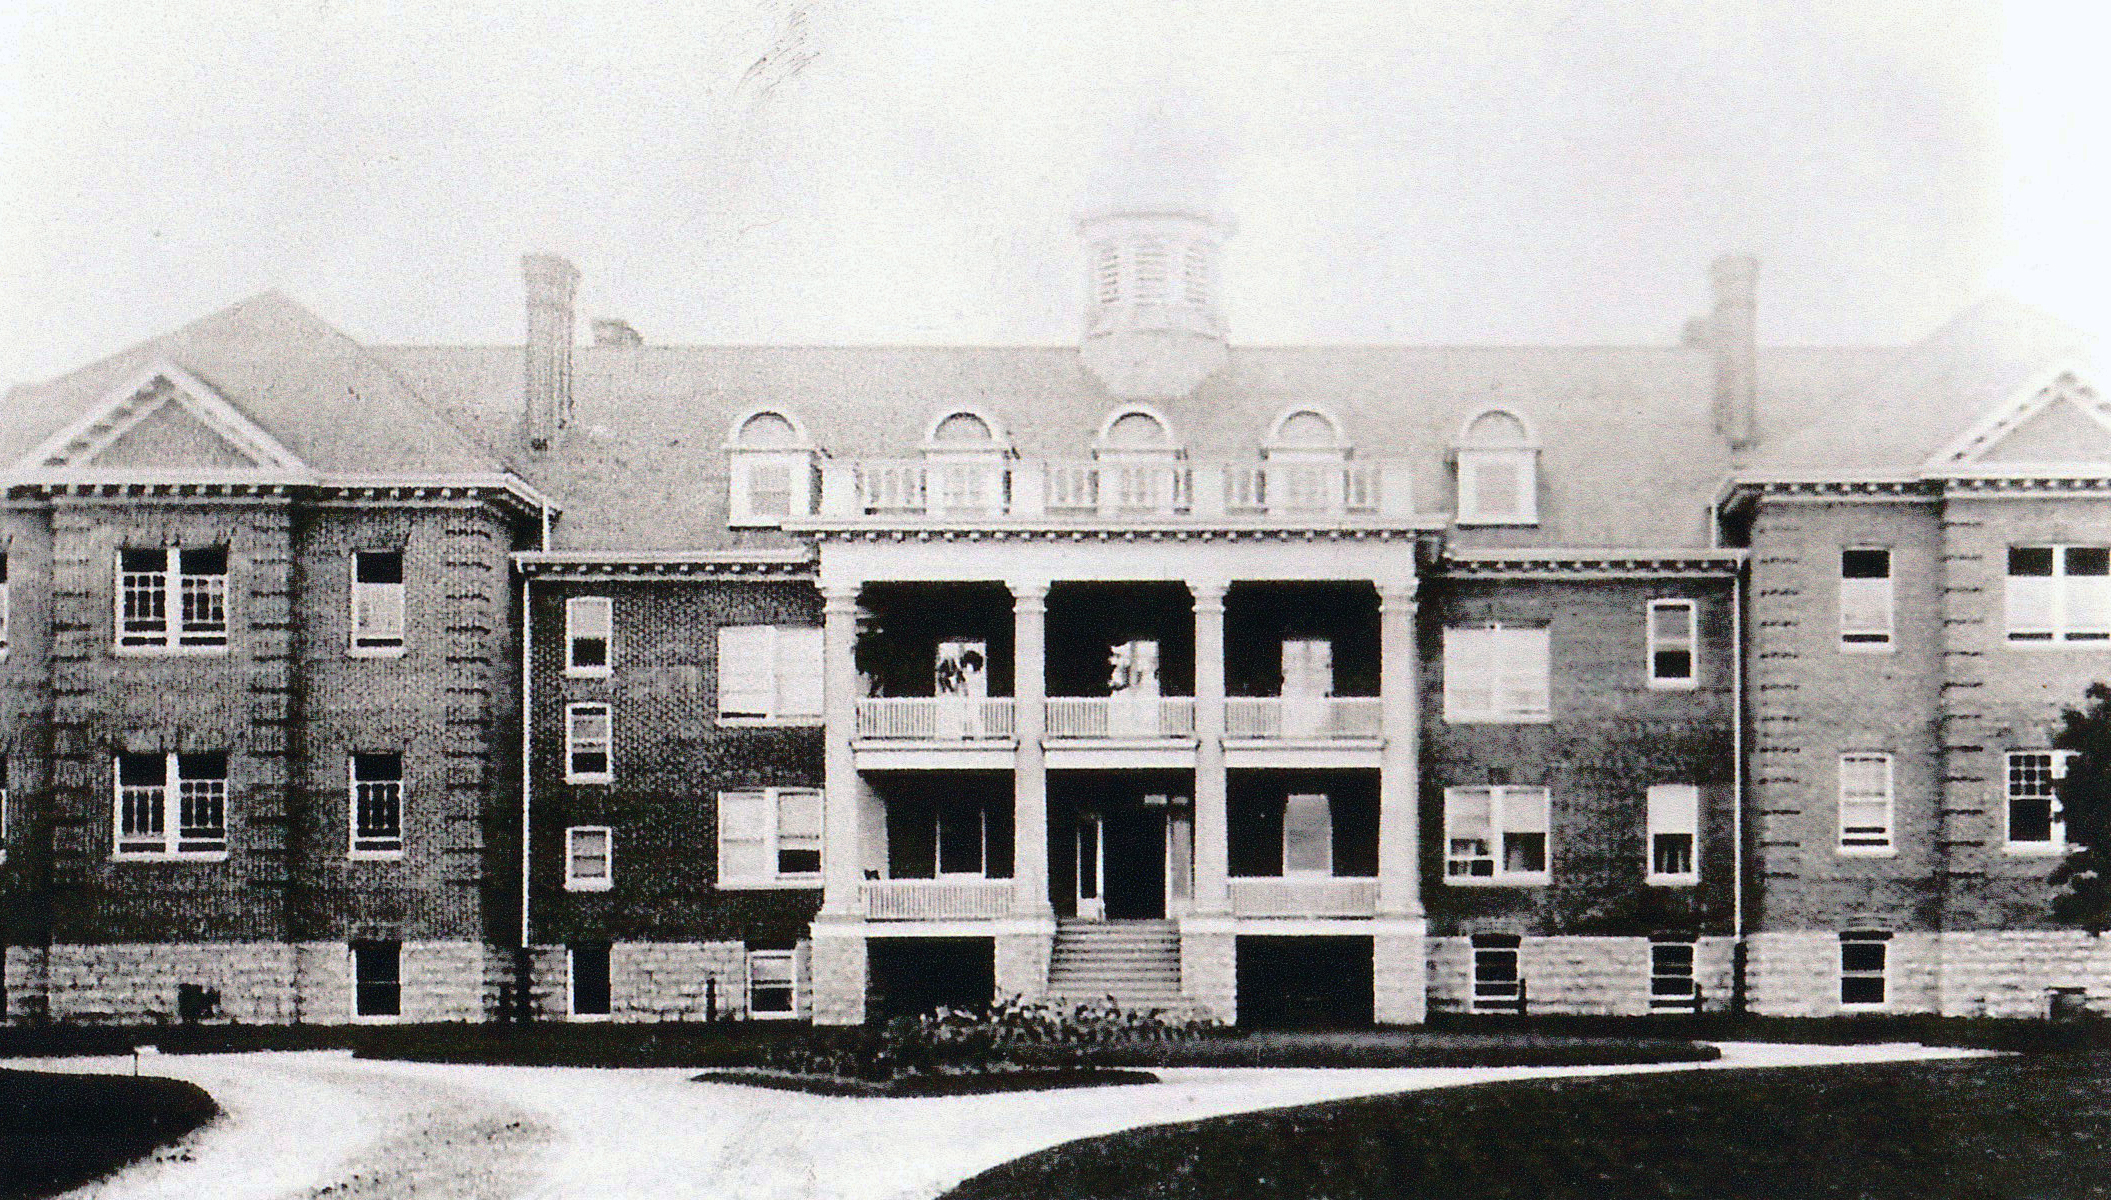 archival image of old school building